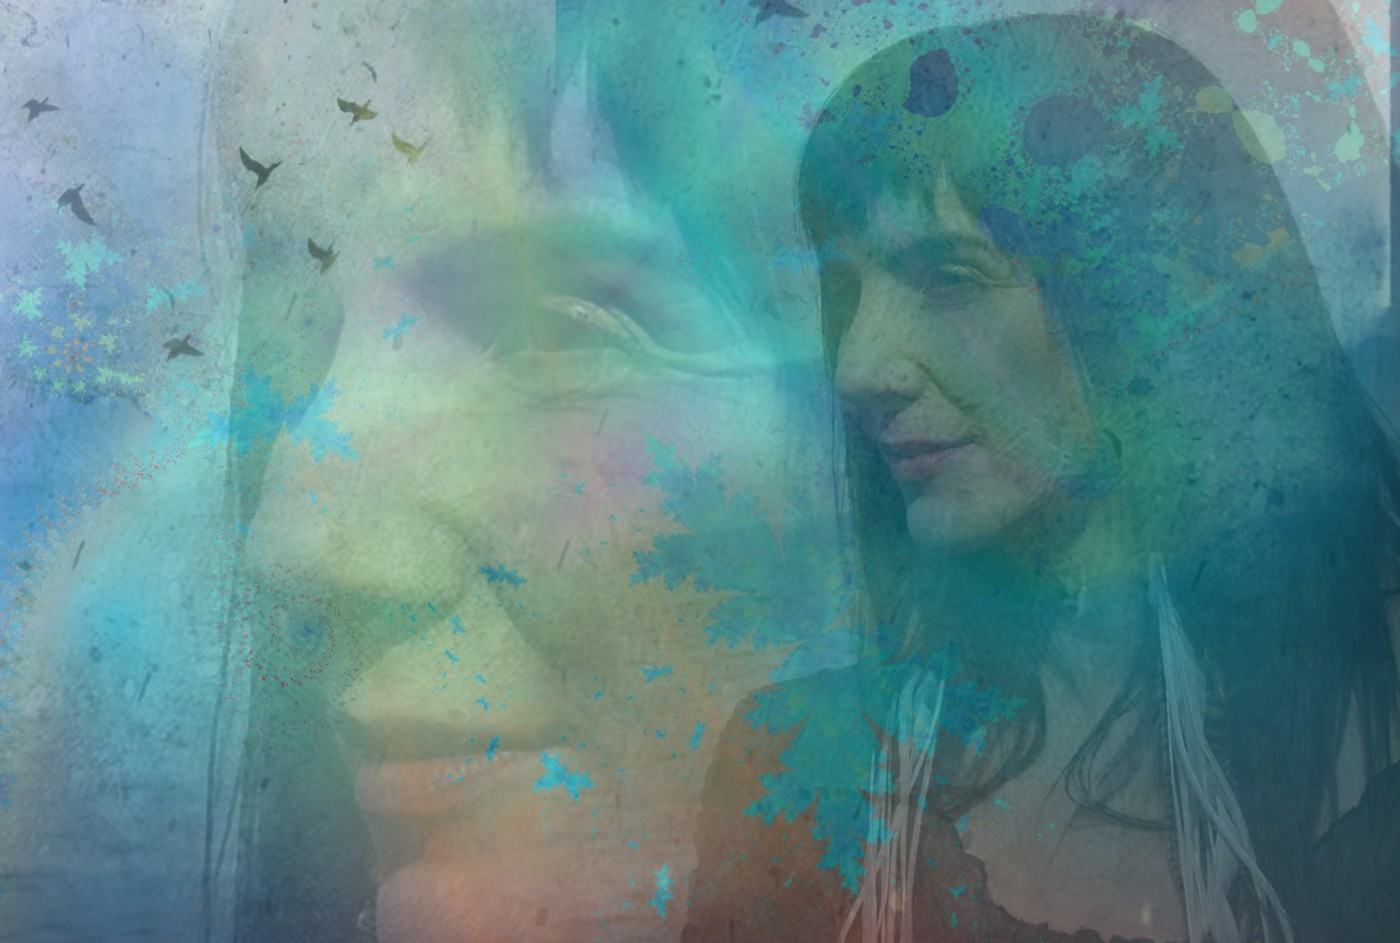 Composite image including a woman's profile, seabirds and fractal colors in blues and greens.